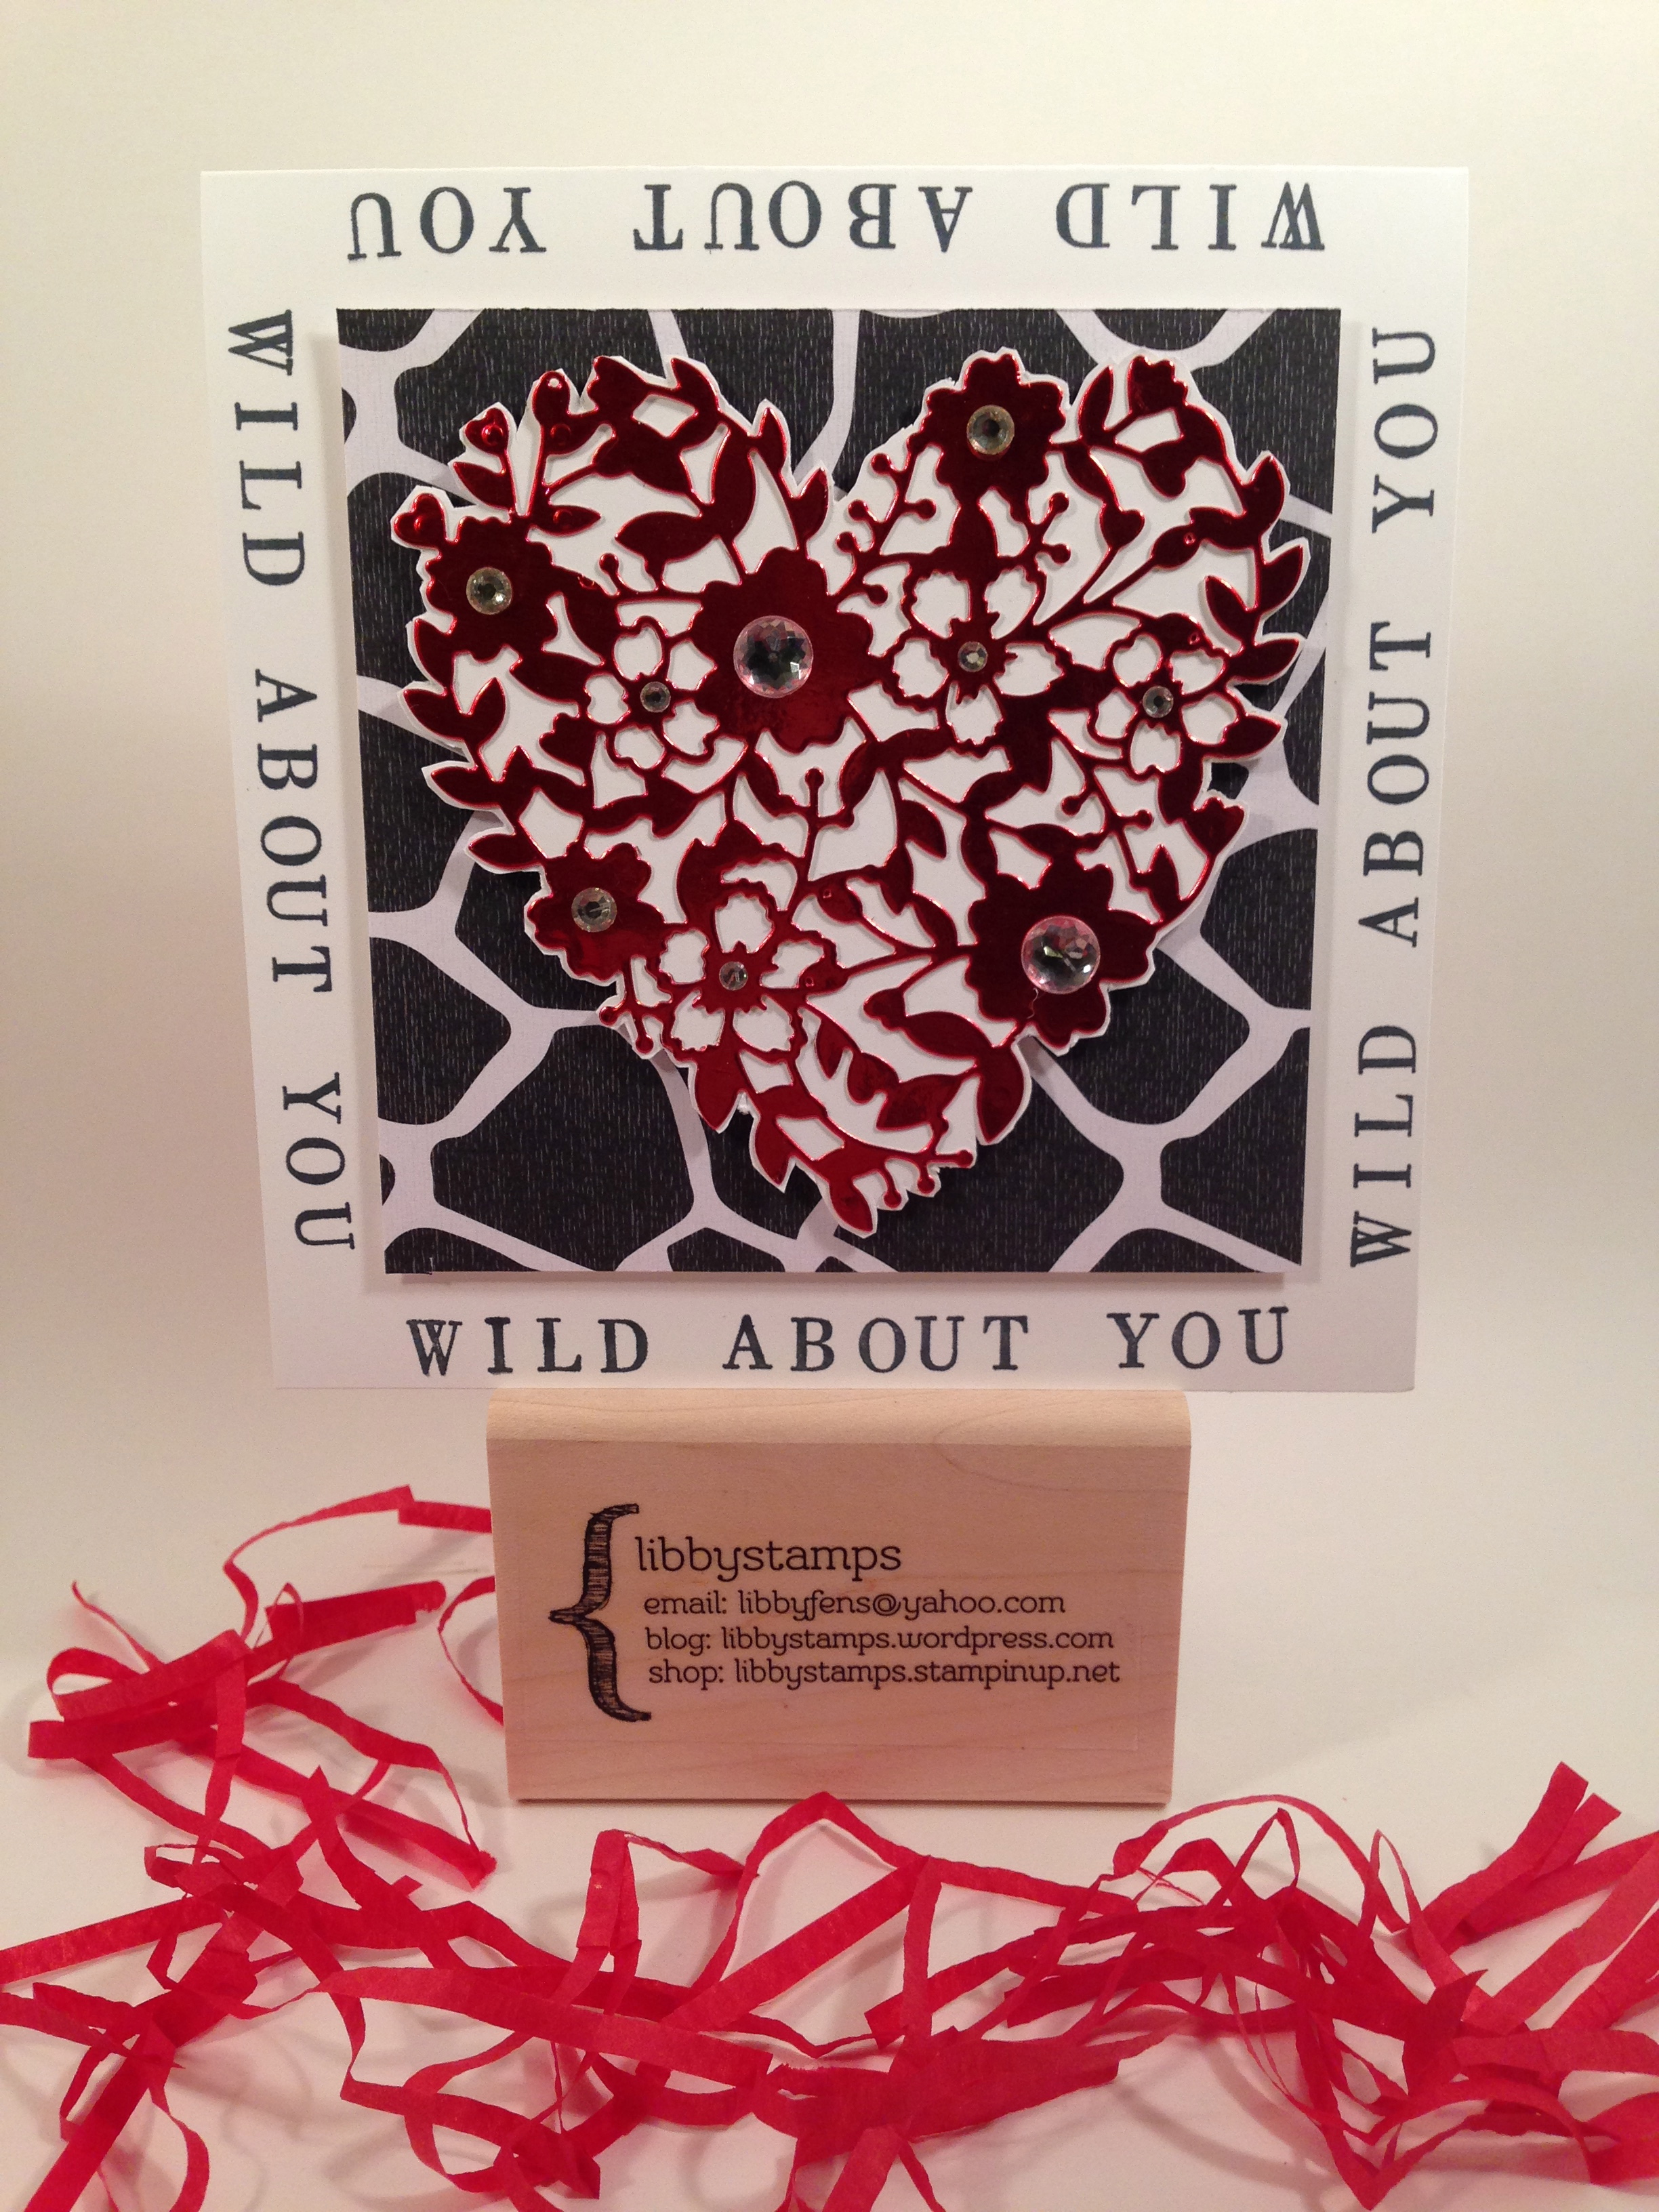 libbystamps, Stampin' Up, Blogging Friends Blog Hop, Bloomin' Hearts Thinlits, Go Wild DSP Stack, Red Foil Sheets, Valentine's, treat bag